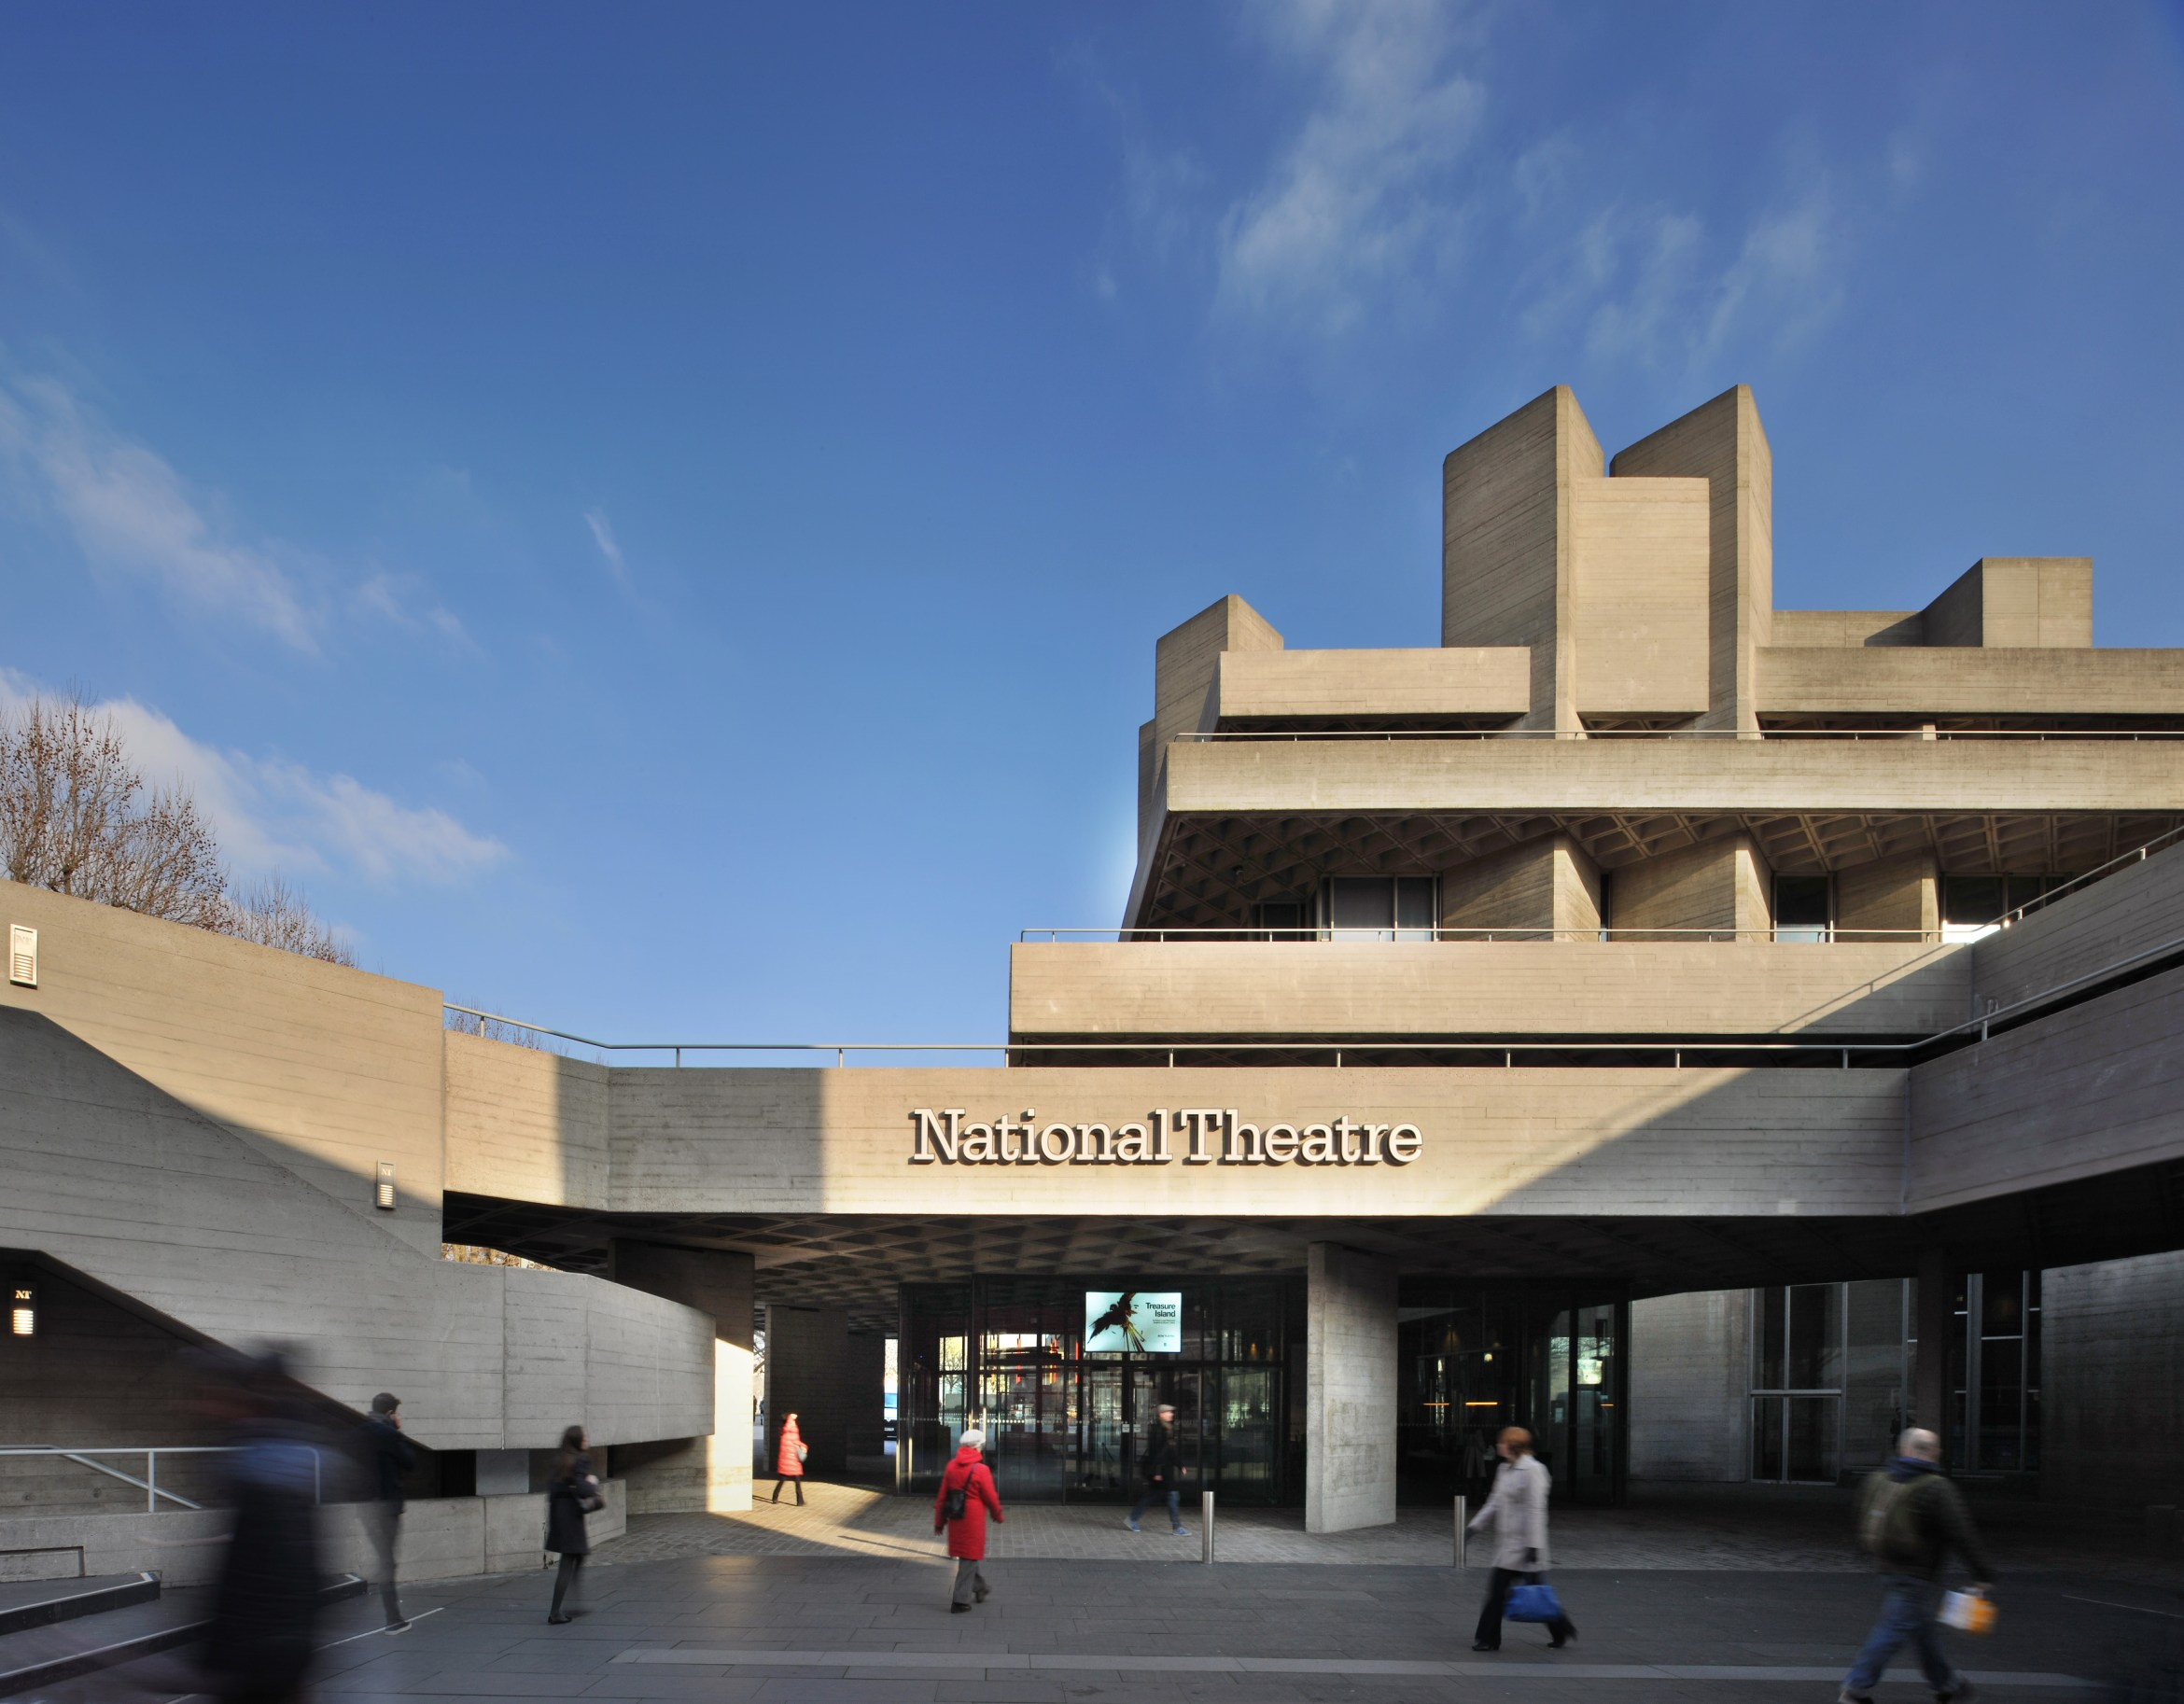 NT entrance_2 Feb 2015 photo by Philip Vile